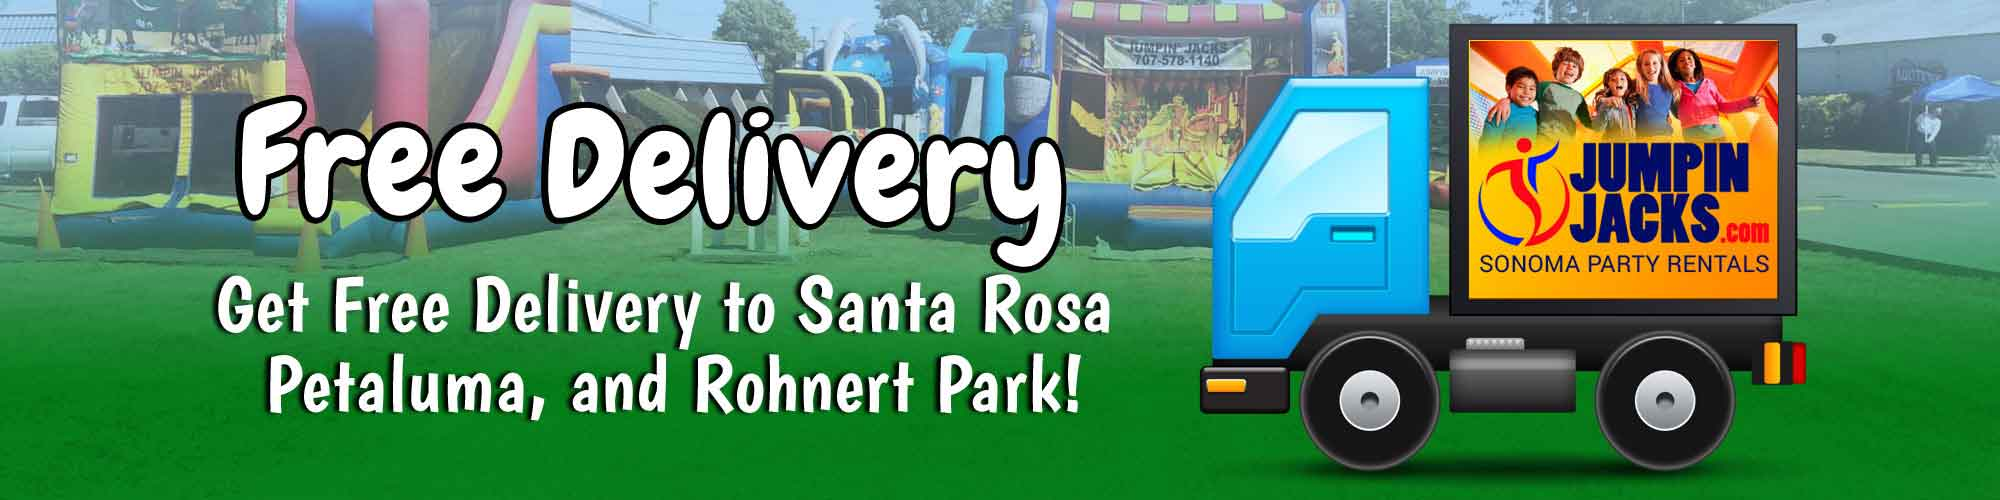 Free Delivery to Rohnert Park